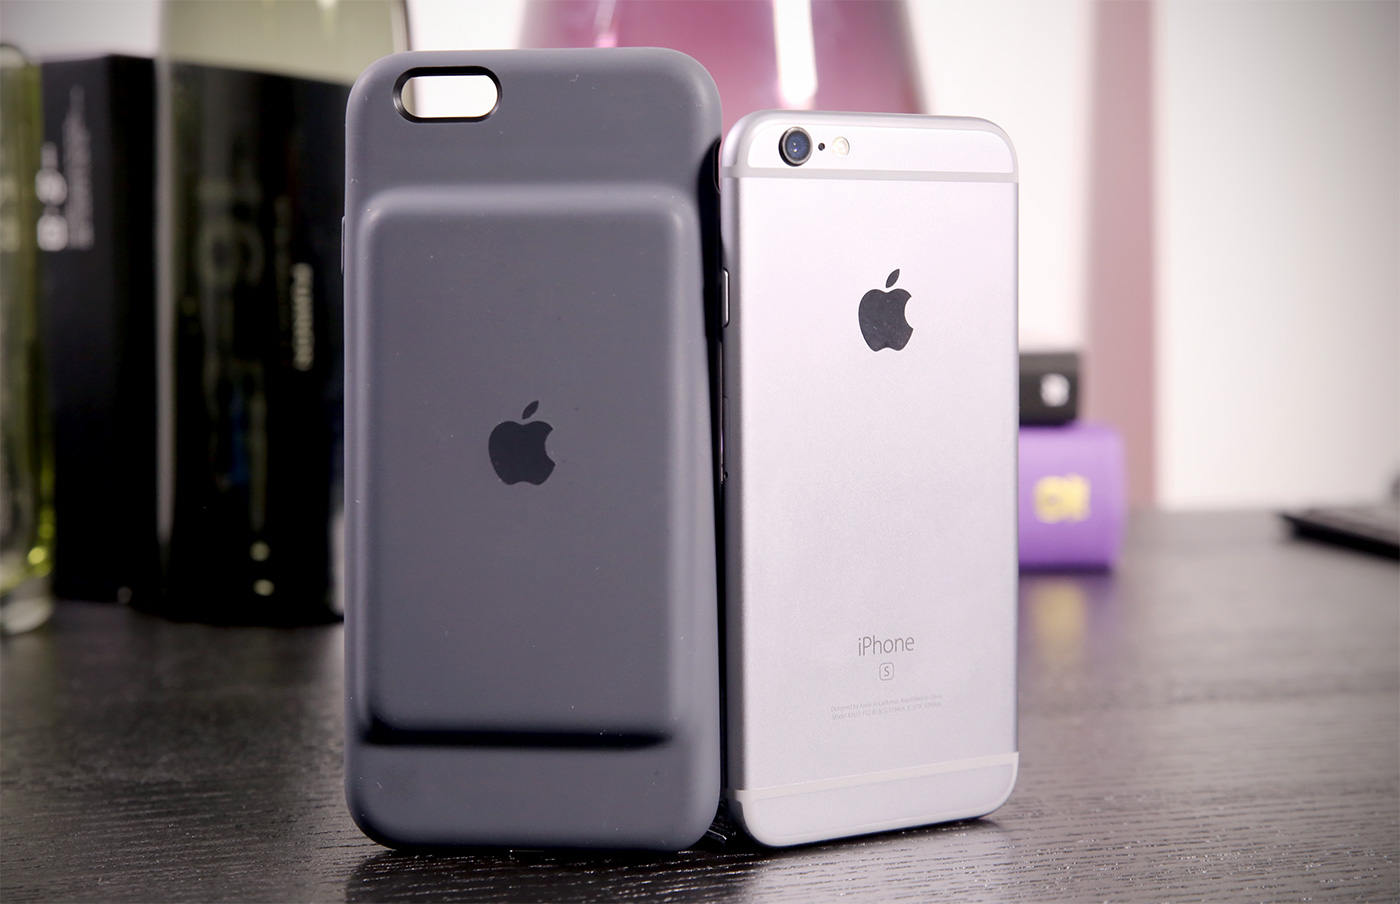 Apple $99 Smart Battery Case